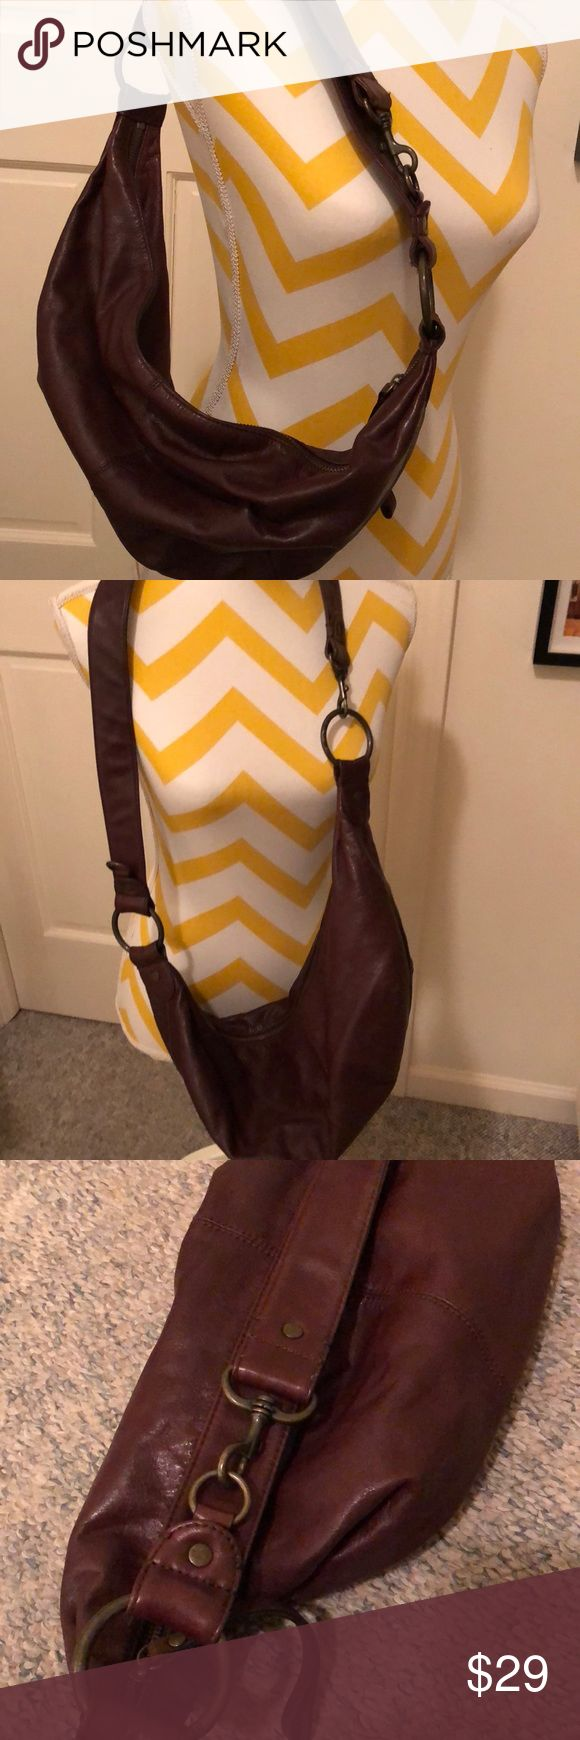 🔥REDUCED Brown leather GAP shoulder/crossbody bag Brown leather GAP shoulder/crossbody bag! With just one click of the claps this bag goes from a shoulder to a cross body bag. Crescent shaped and slouchy, perfect boho look! Soft, supple leather. It is 9 inches tall and 16 wide laying flat.  It did have a tag in the inside stating 'leather' but it used to drive me nuts so I cut it off 😬 about a year ago. No damage or stains. It's a beautiful functional bag!! Please ask all questions before…